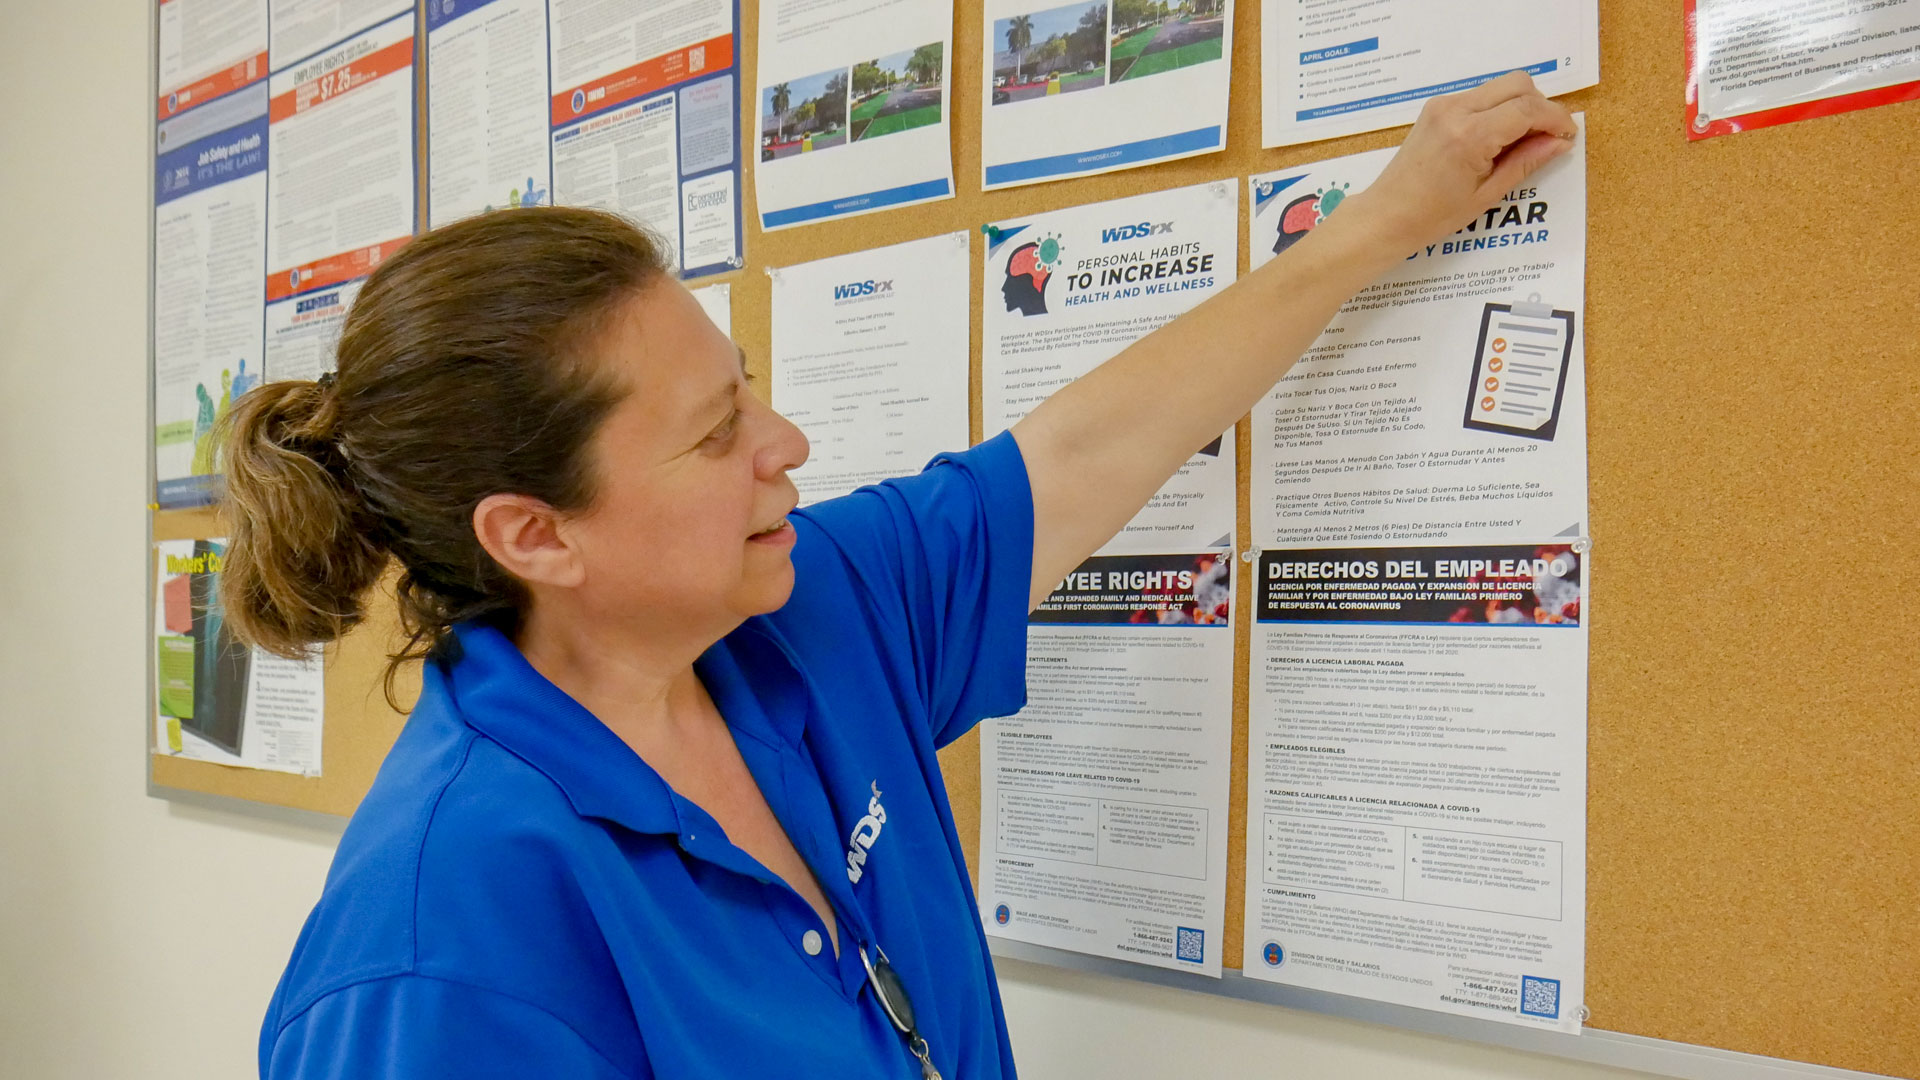 Informative health posters are being posted to help increase business continuity